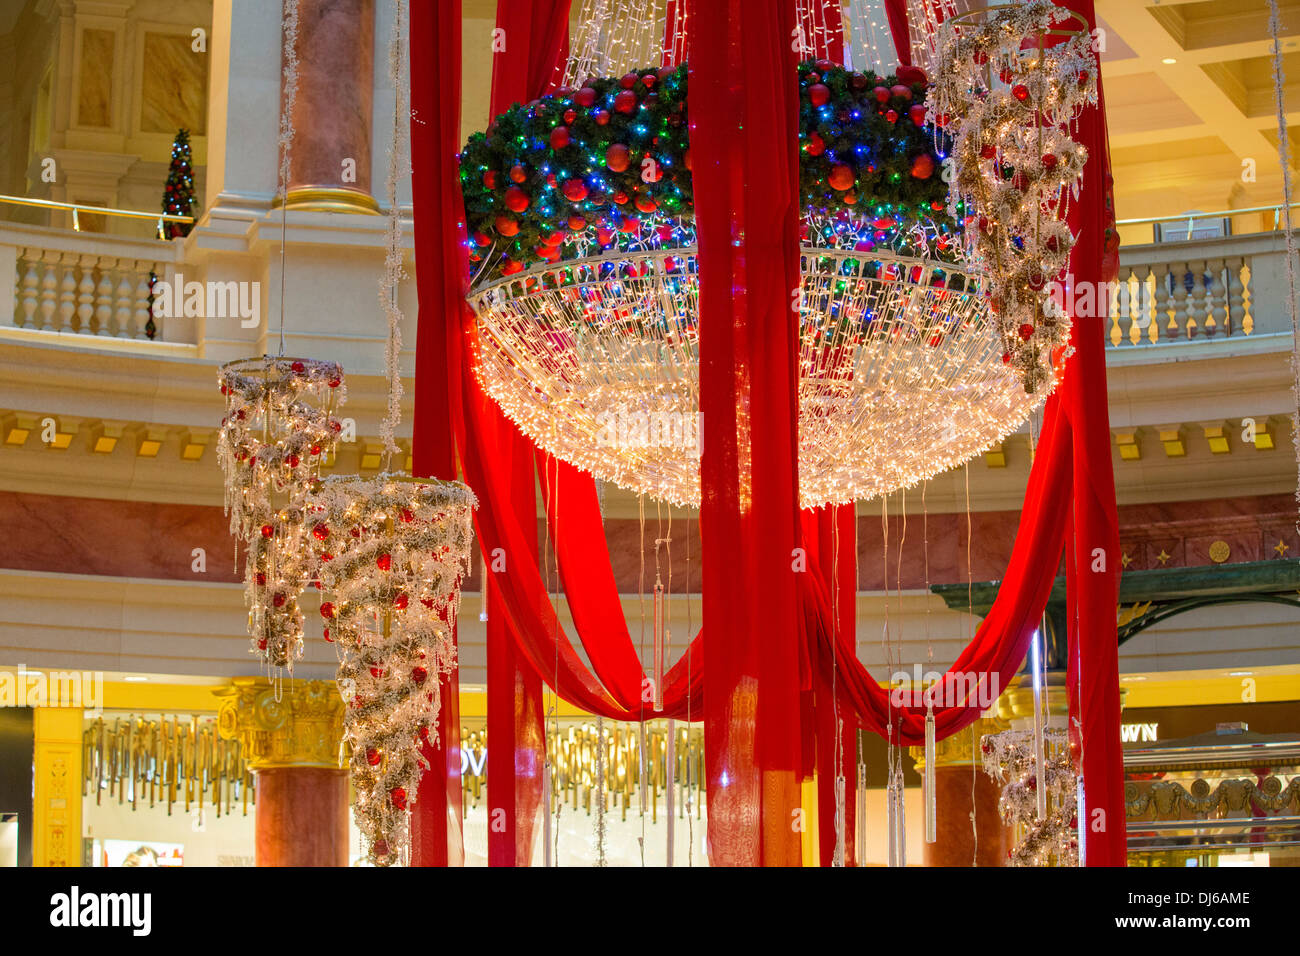 Christmas decorations at the Trafford Centre in Manchester, UK - Stock Image